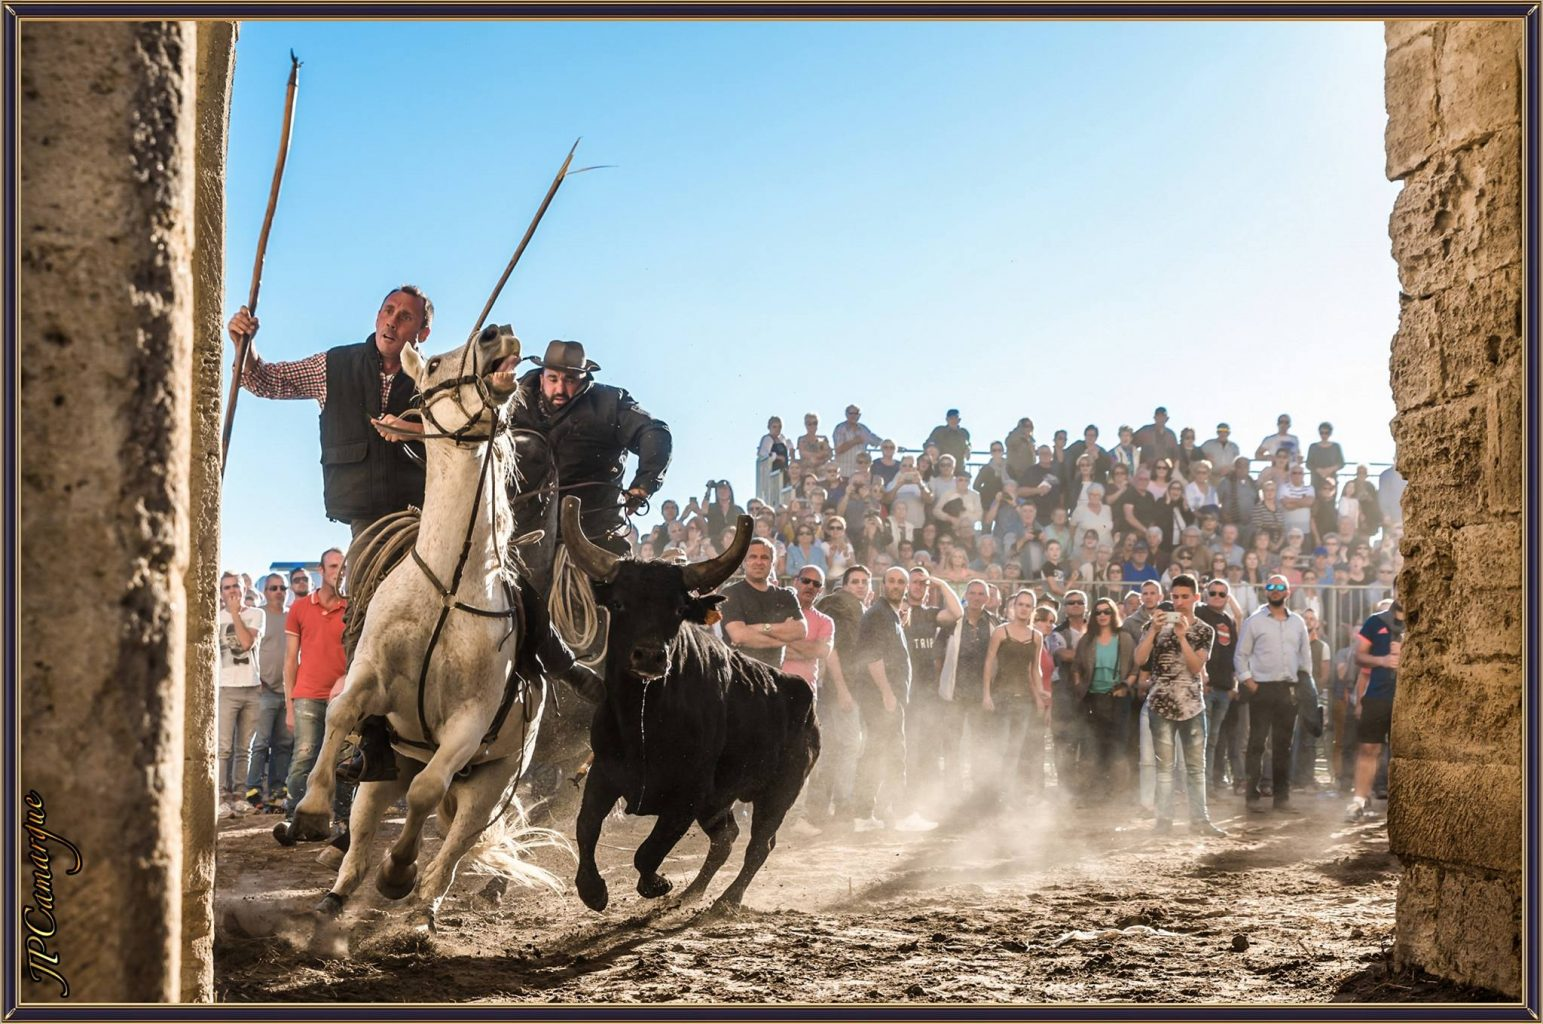 FÊTE AIGUES MORTES – LES VIDEOS ET PHOTOS DU NET